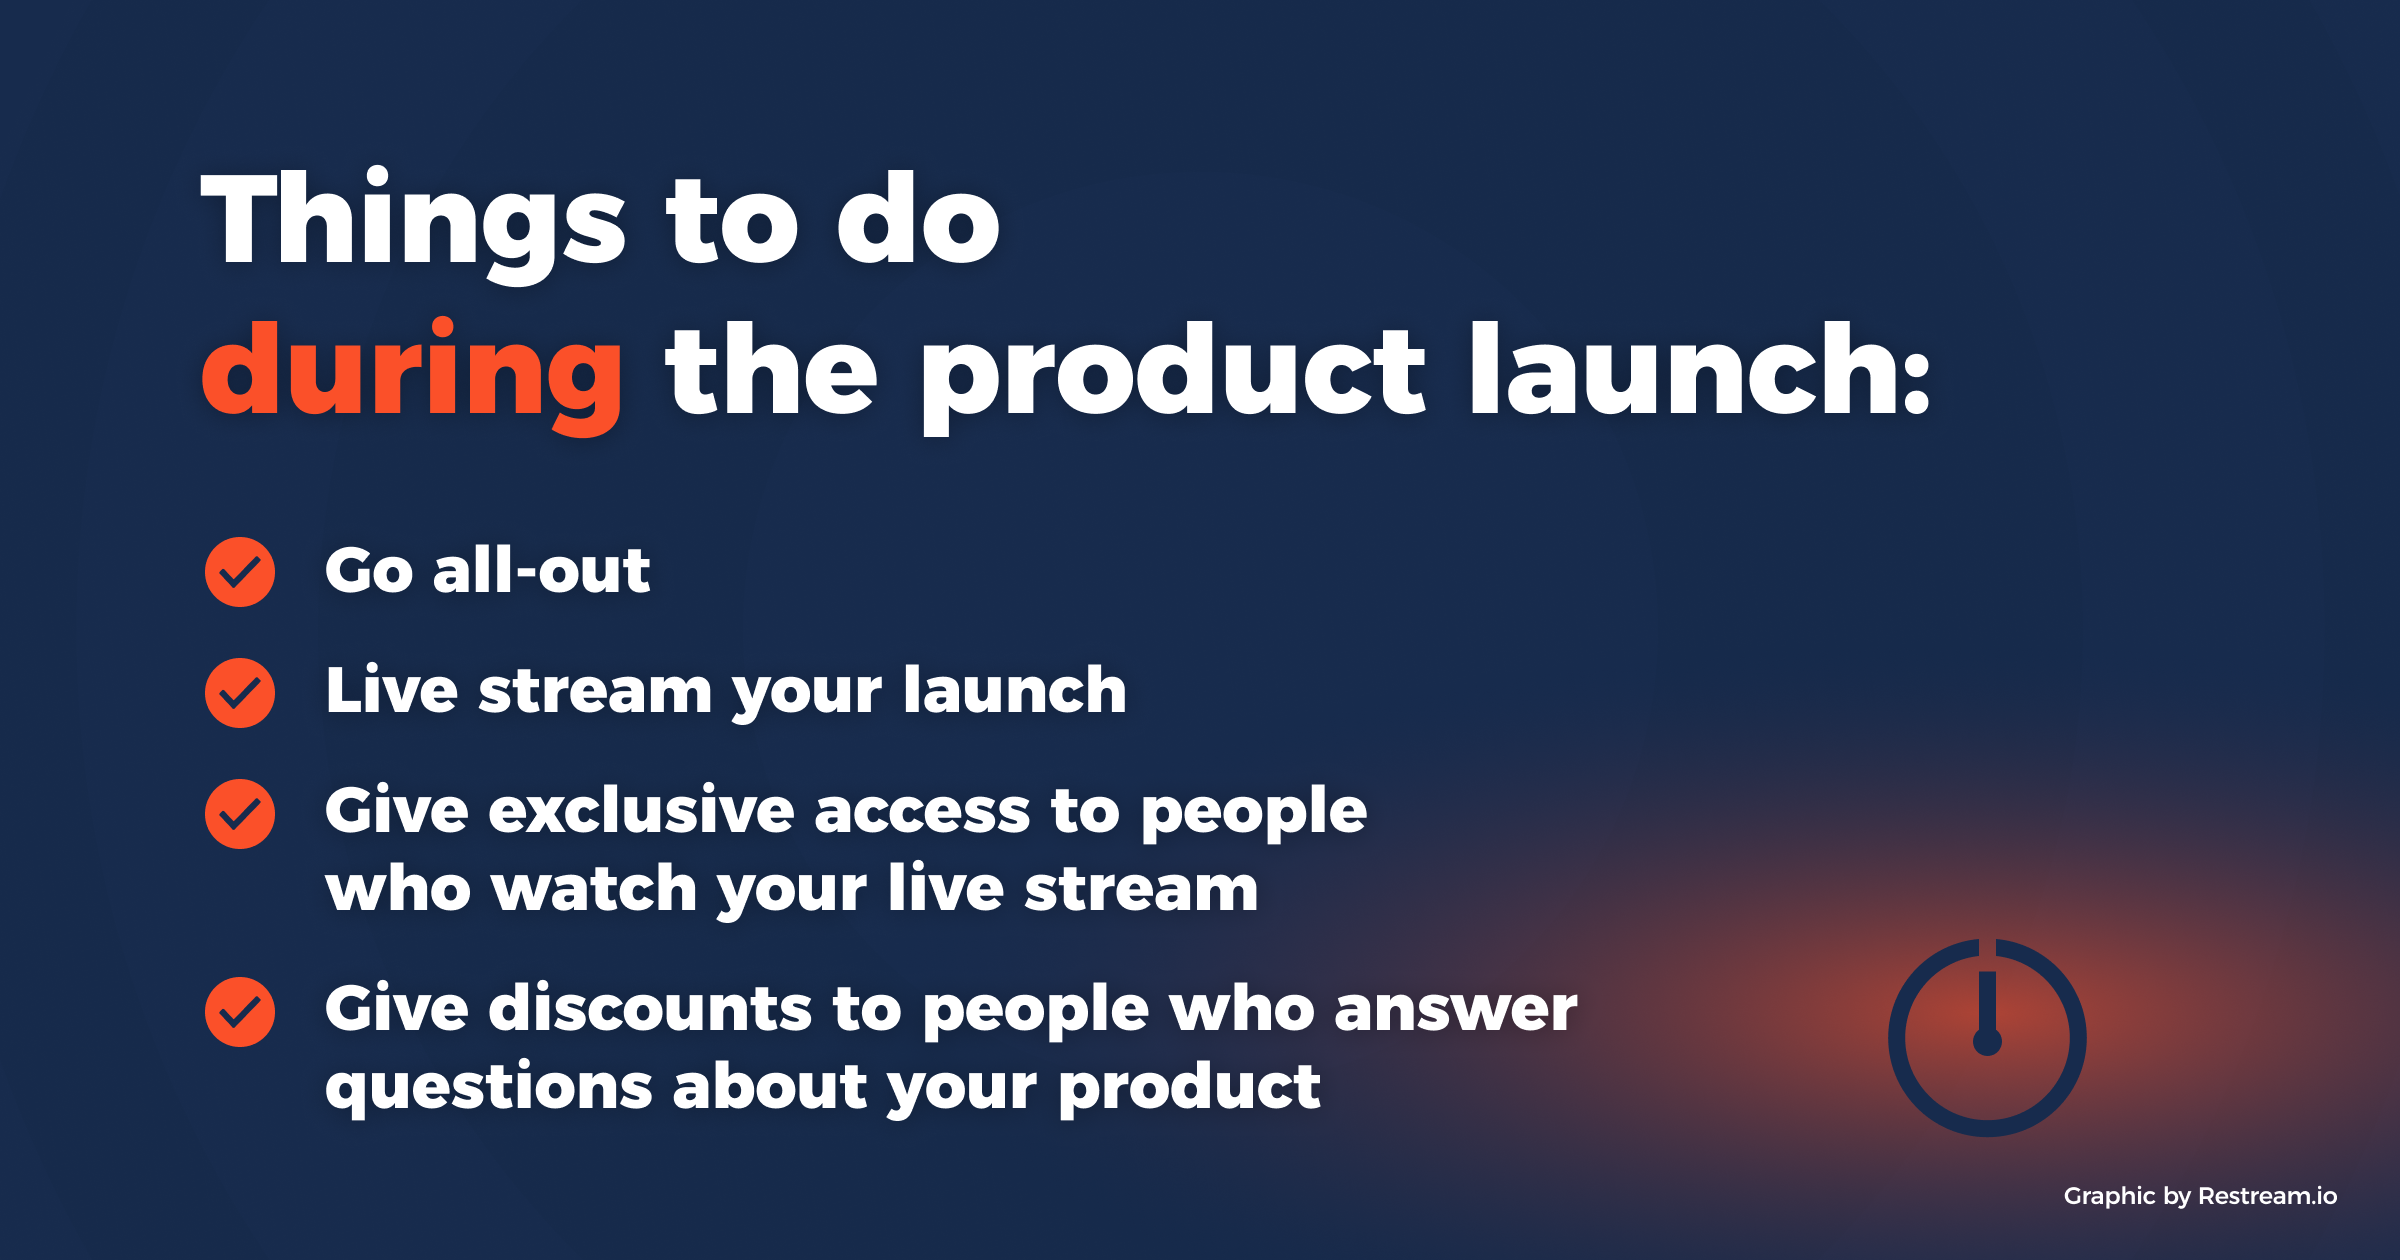 Things to do during the product launch